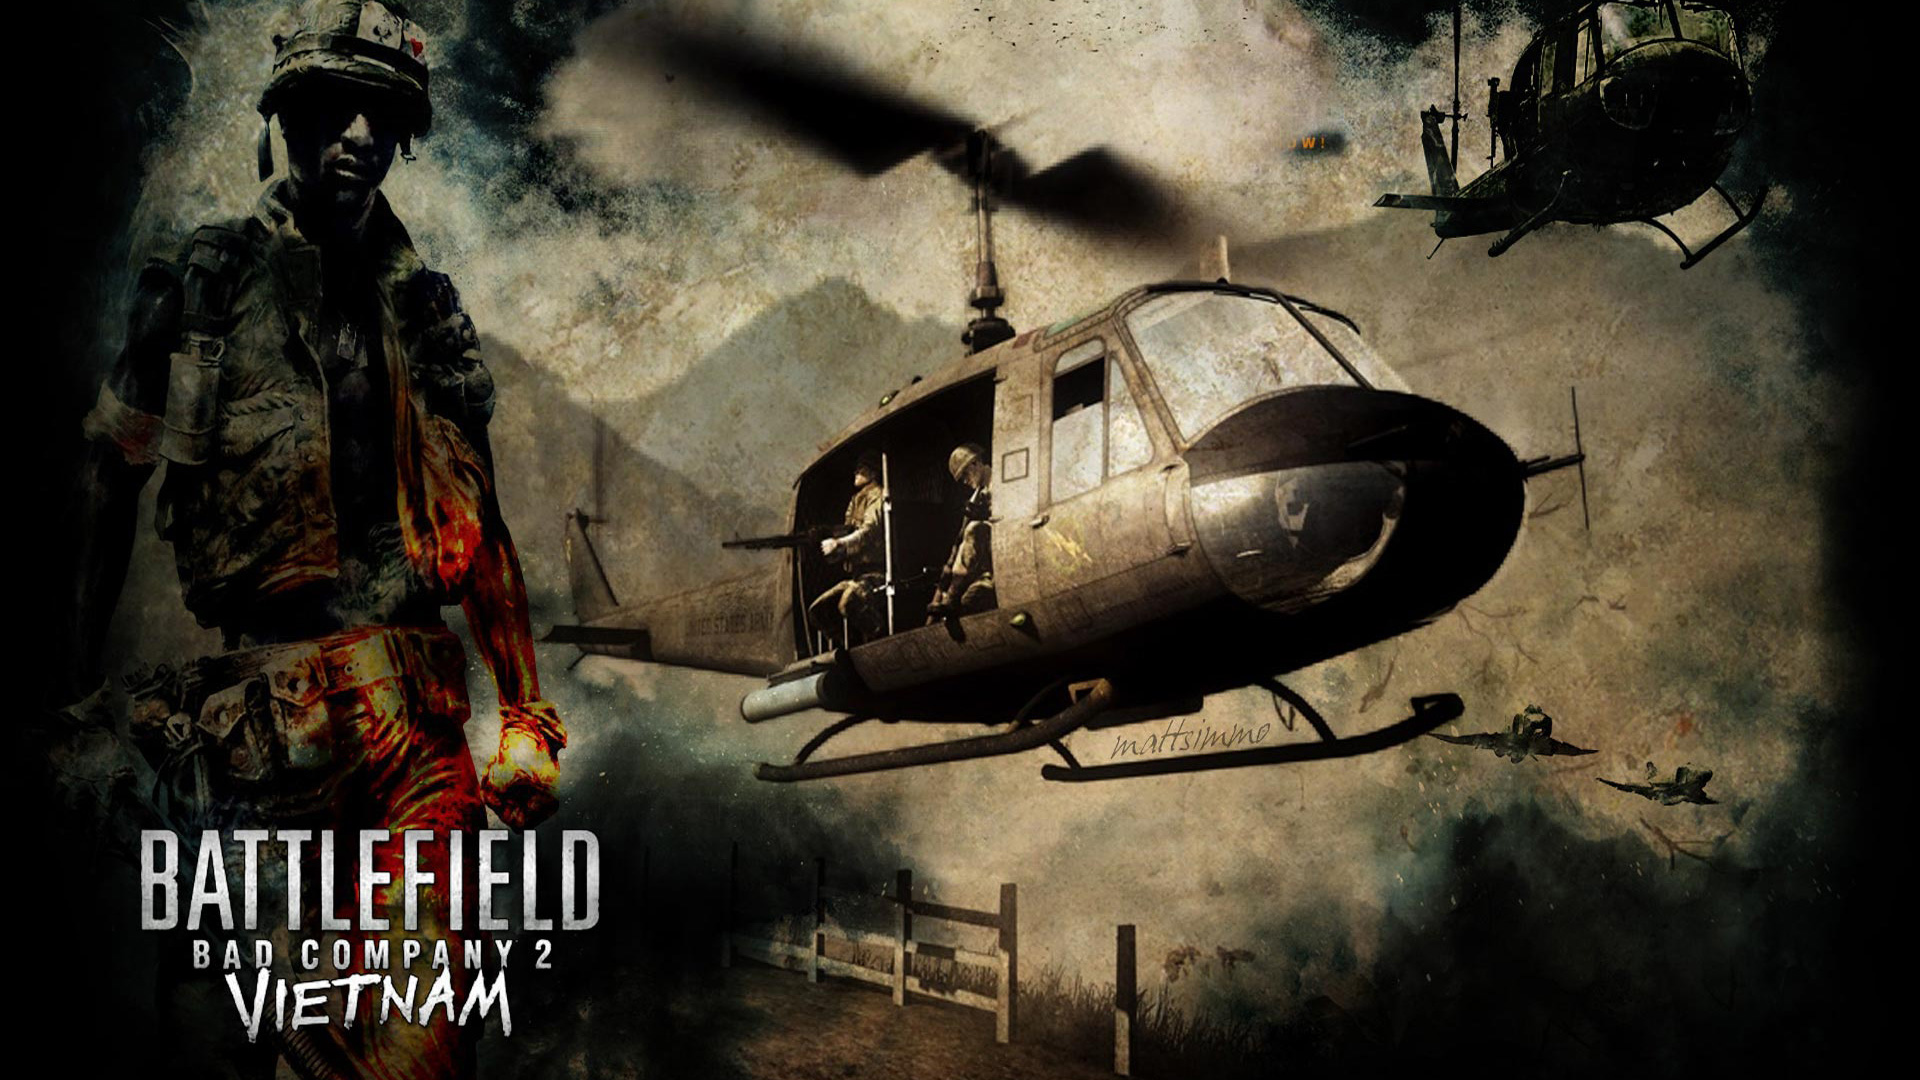 Battlefield Bad Company 2 wallpaper 6